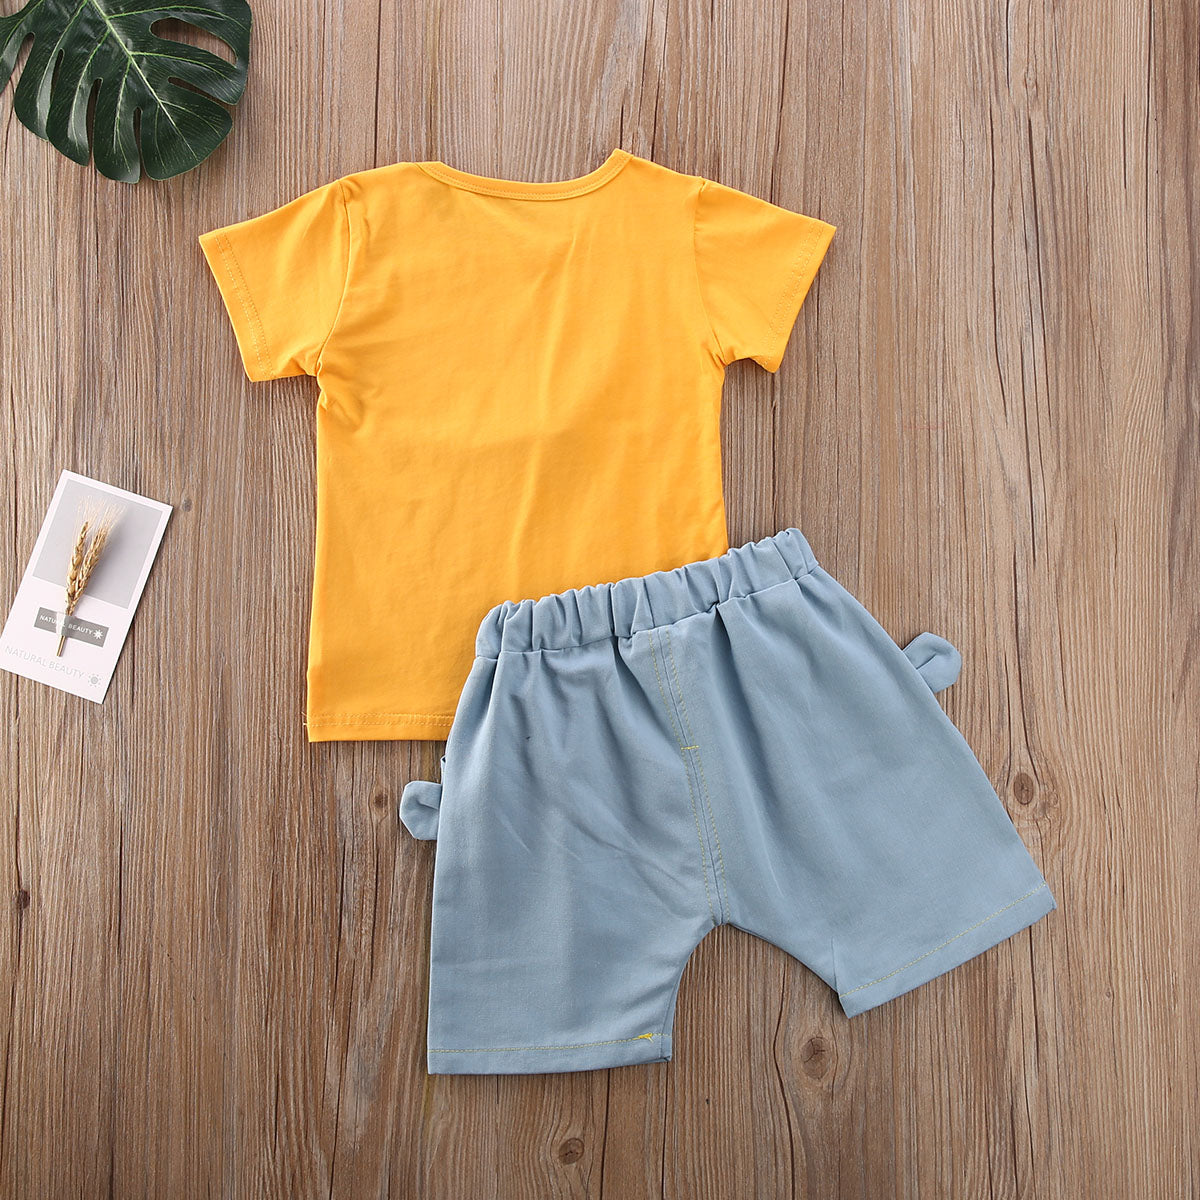 2 Pieces Happy Face Shirt + Shorts